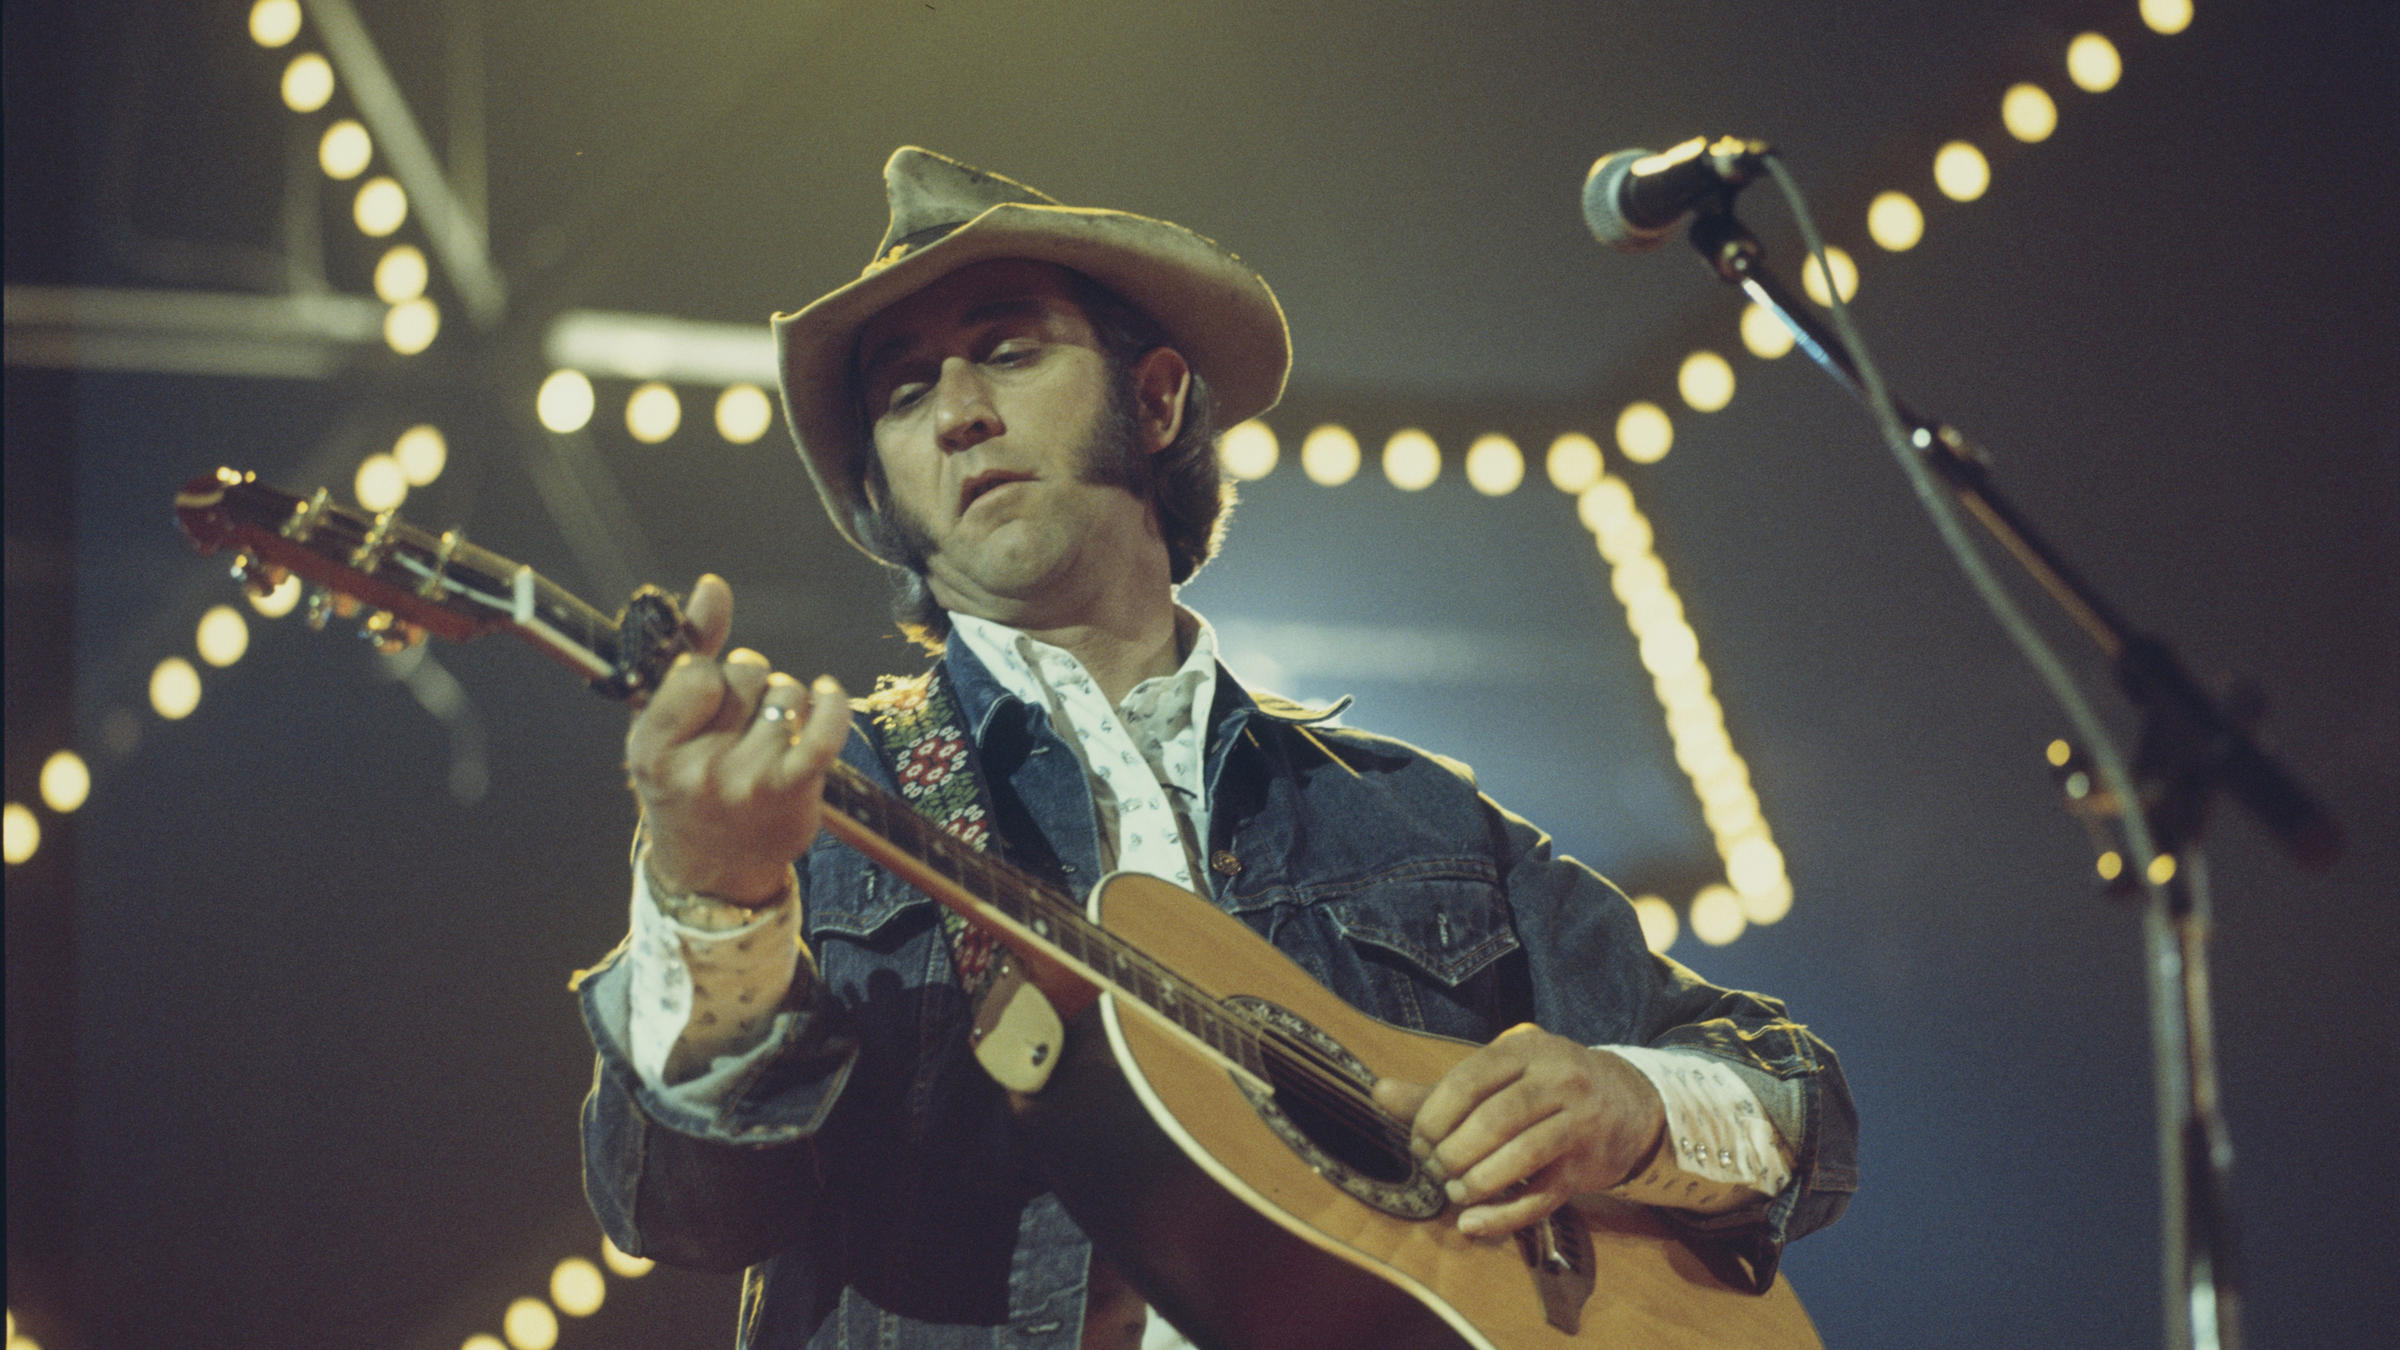 Don Williams Dies: Country Music Hall of Famer Was 78